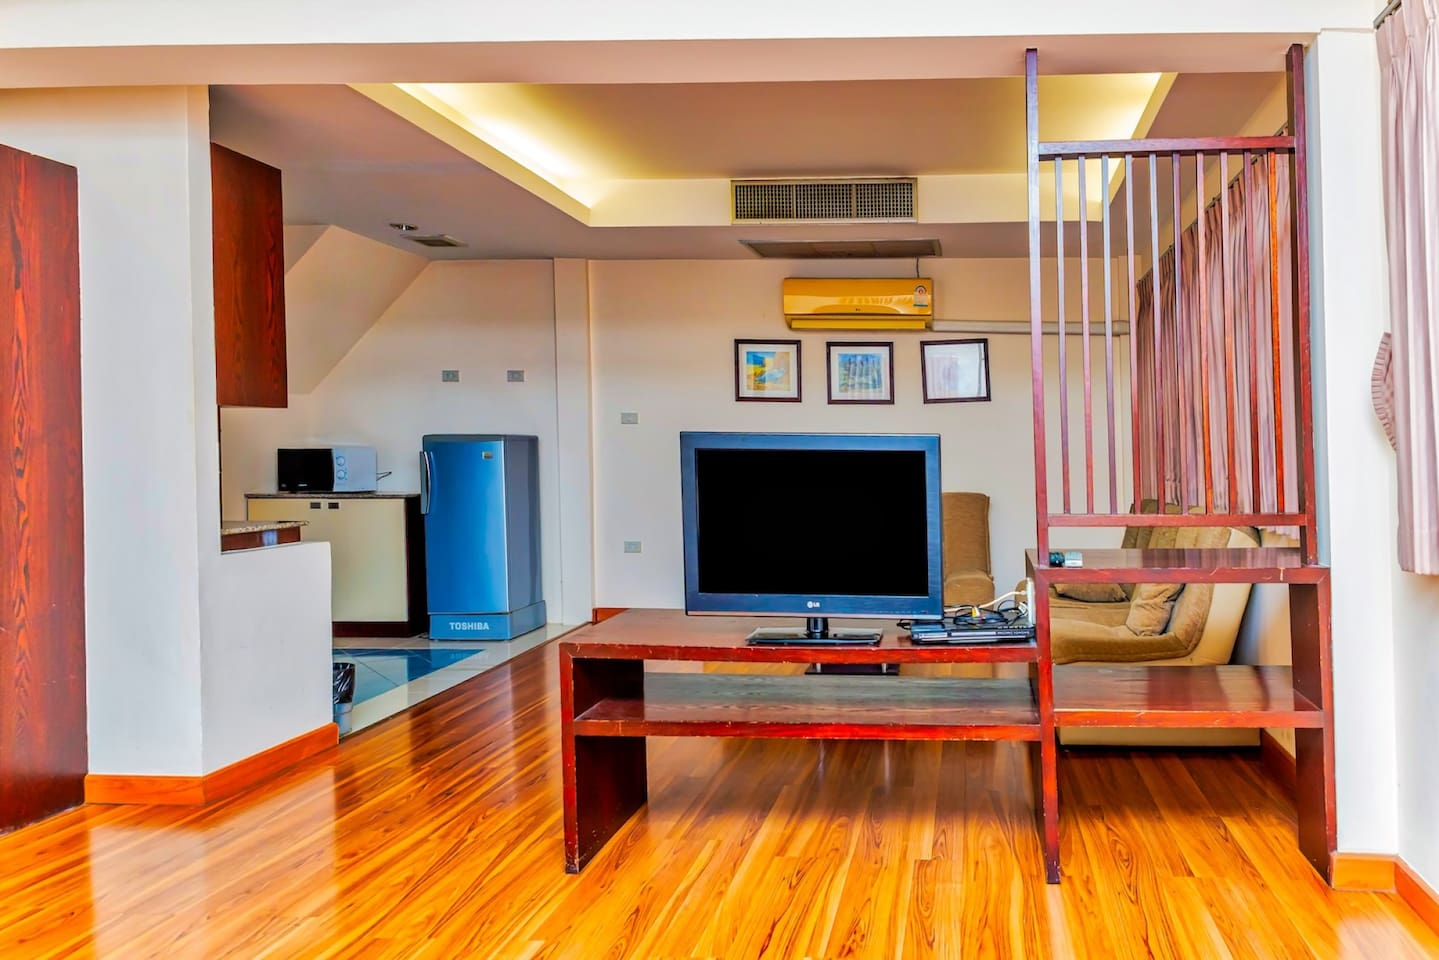 Apartment New 5 King Room in the Center of Pattaya City  Best area  photo 18752421